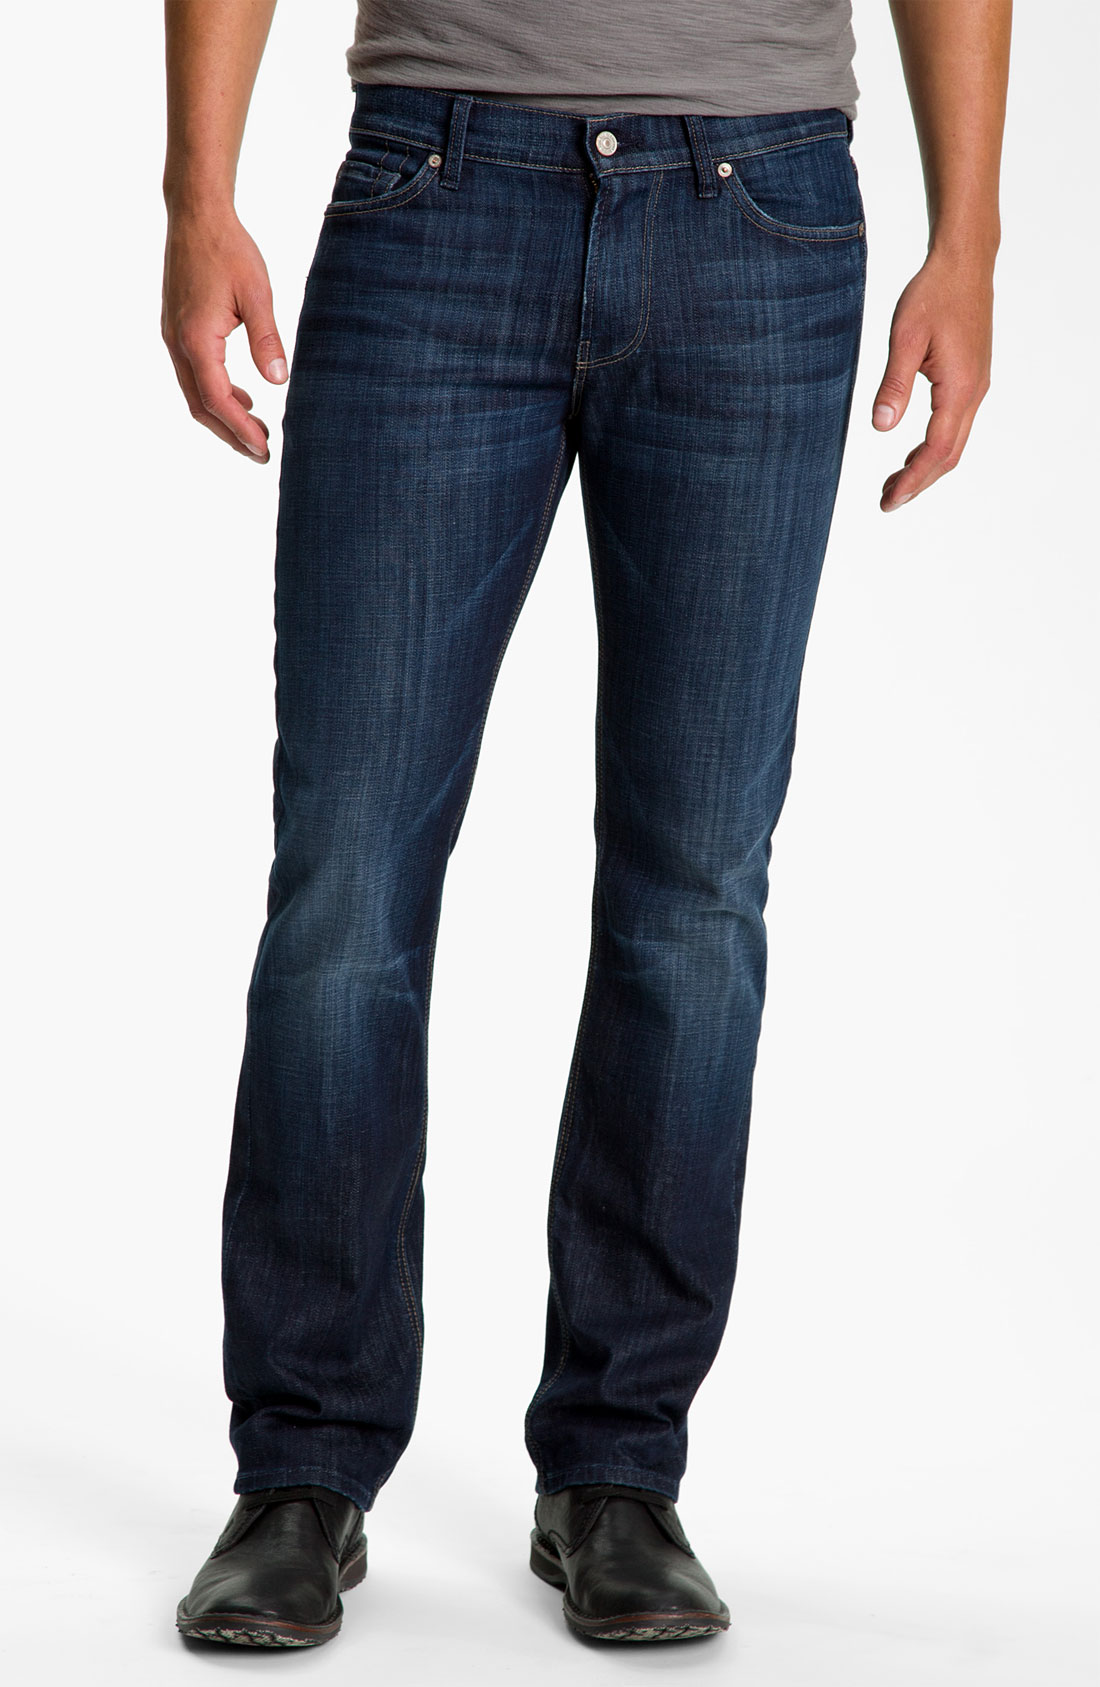 7 for all mankind slimmy slim straight leg jeans los angeles dark in blue for men los angeles. Black Bedroom Furniture Sets. Home Design Ideas